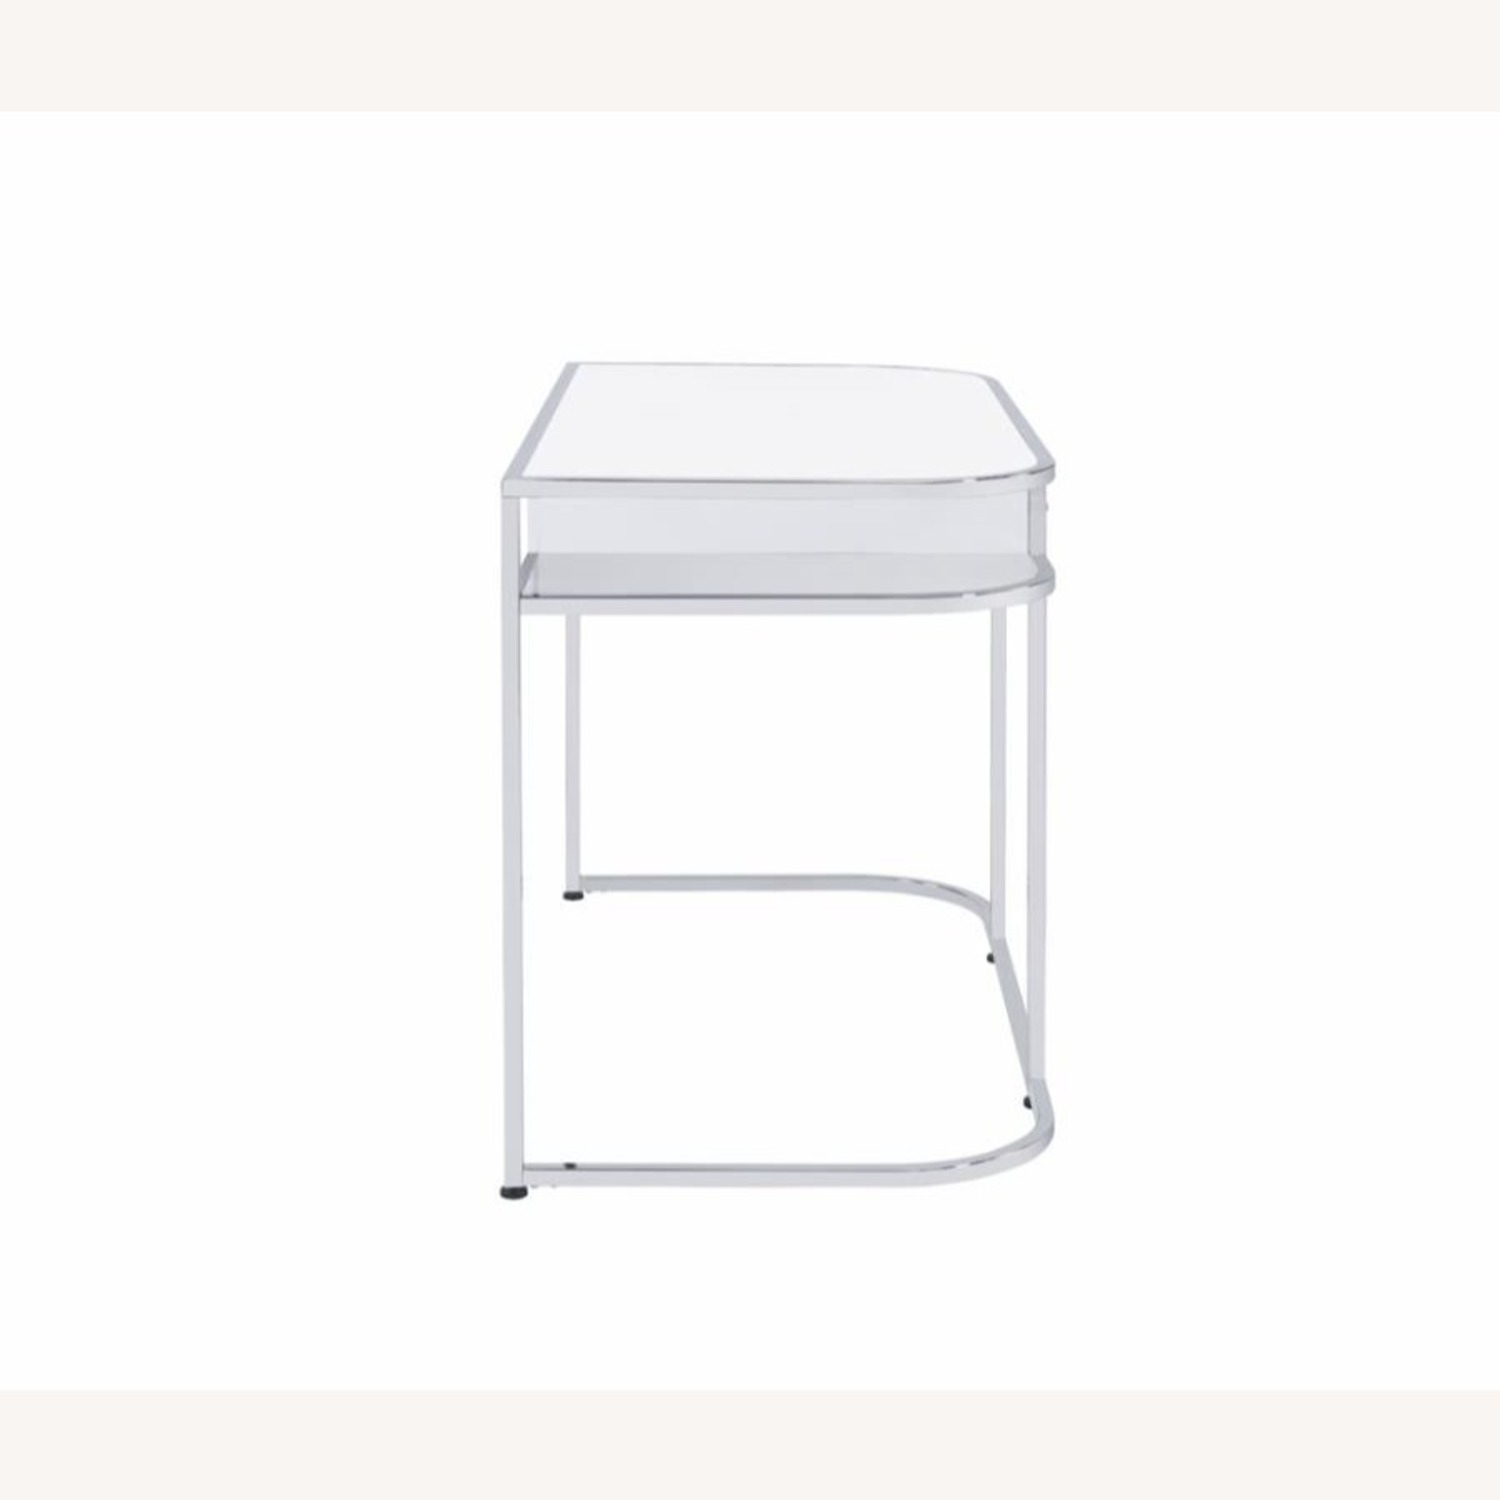 Writing Desk In White High Gloss Lacquer Finish - image-4